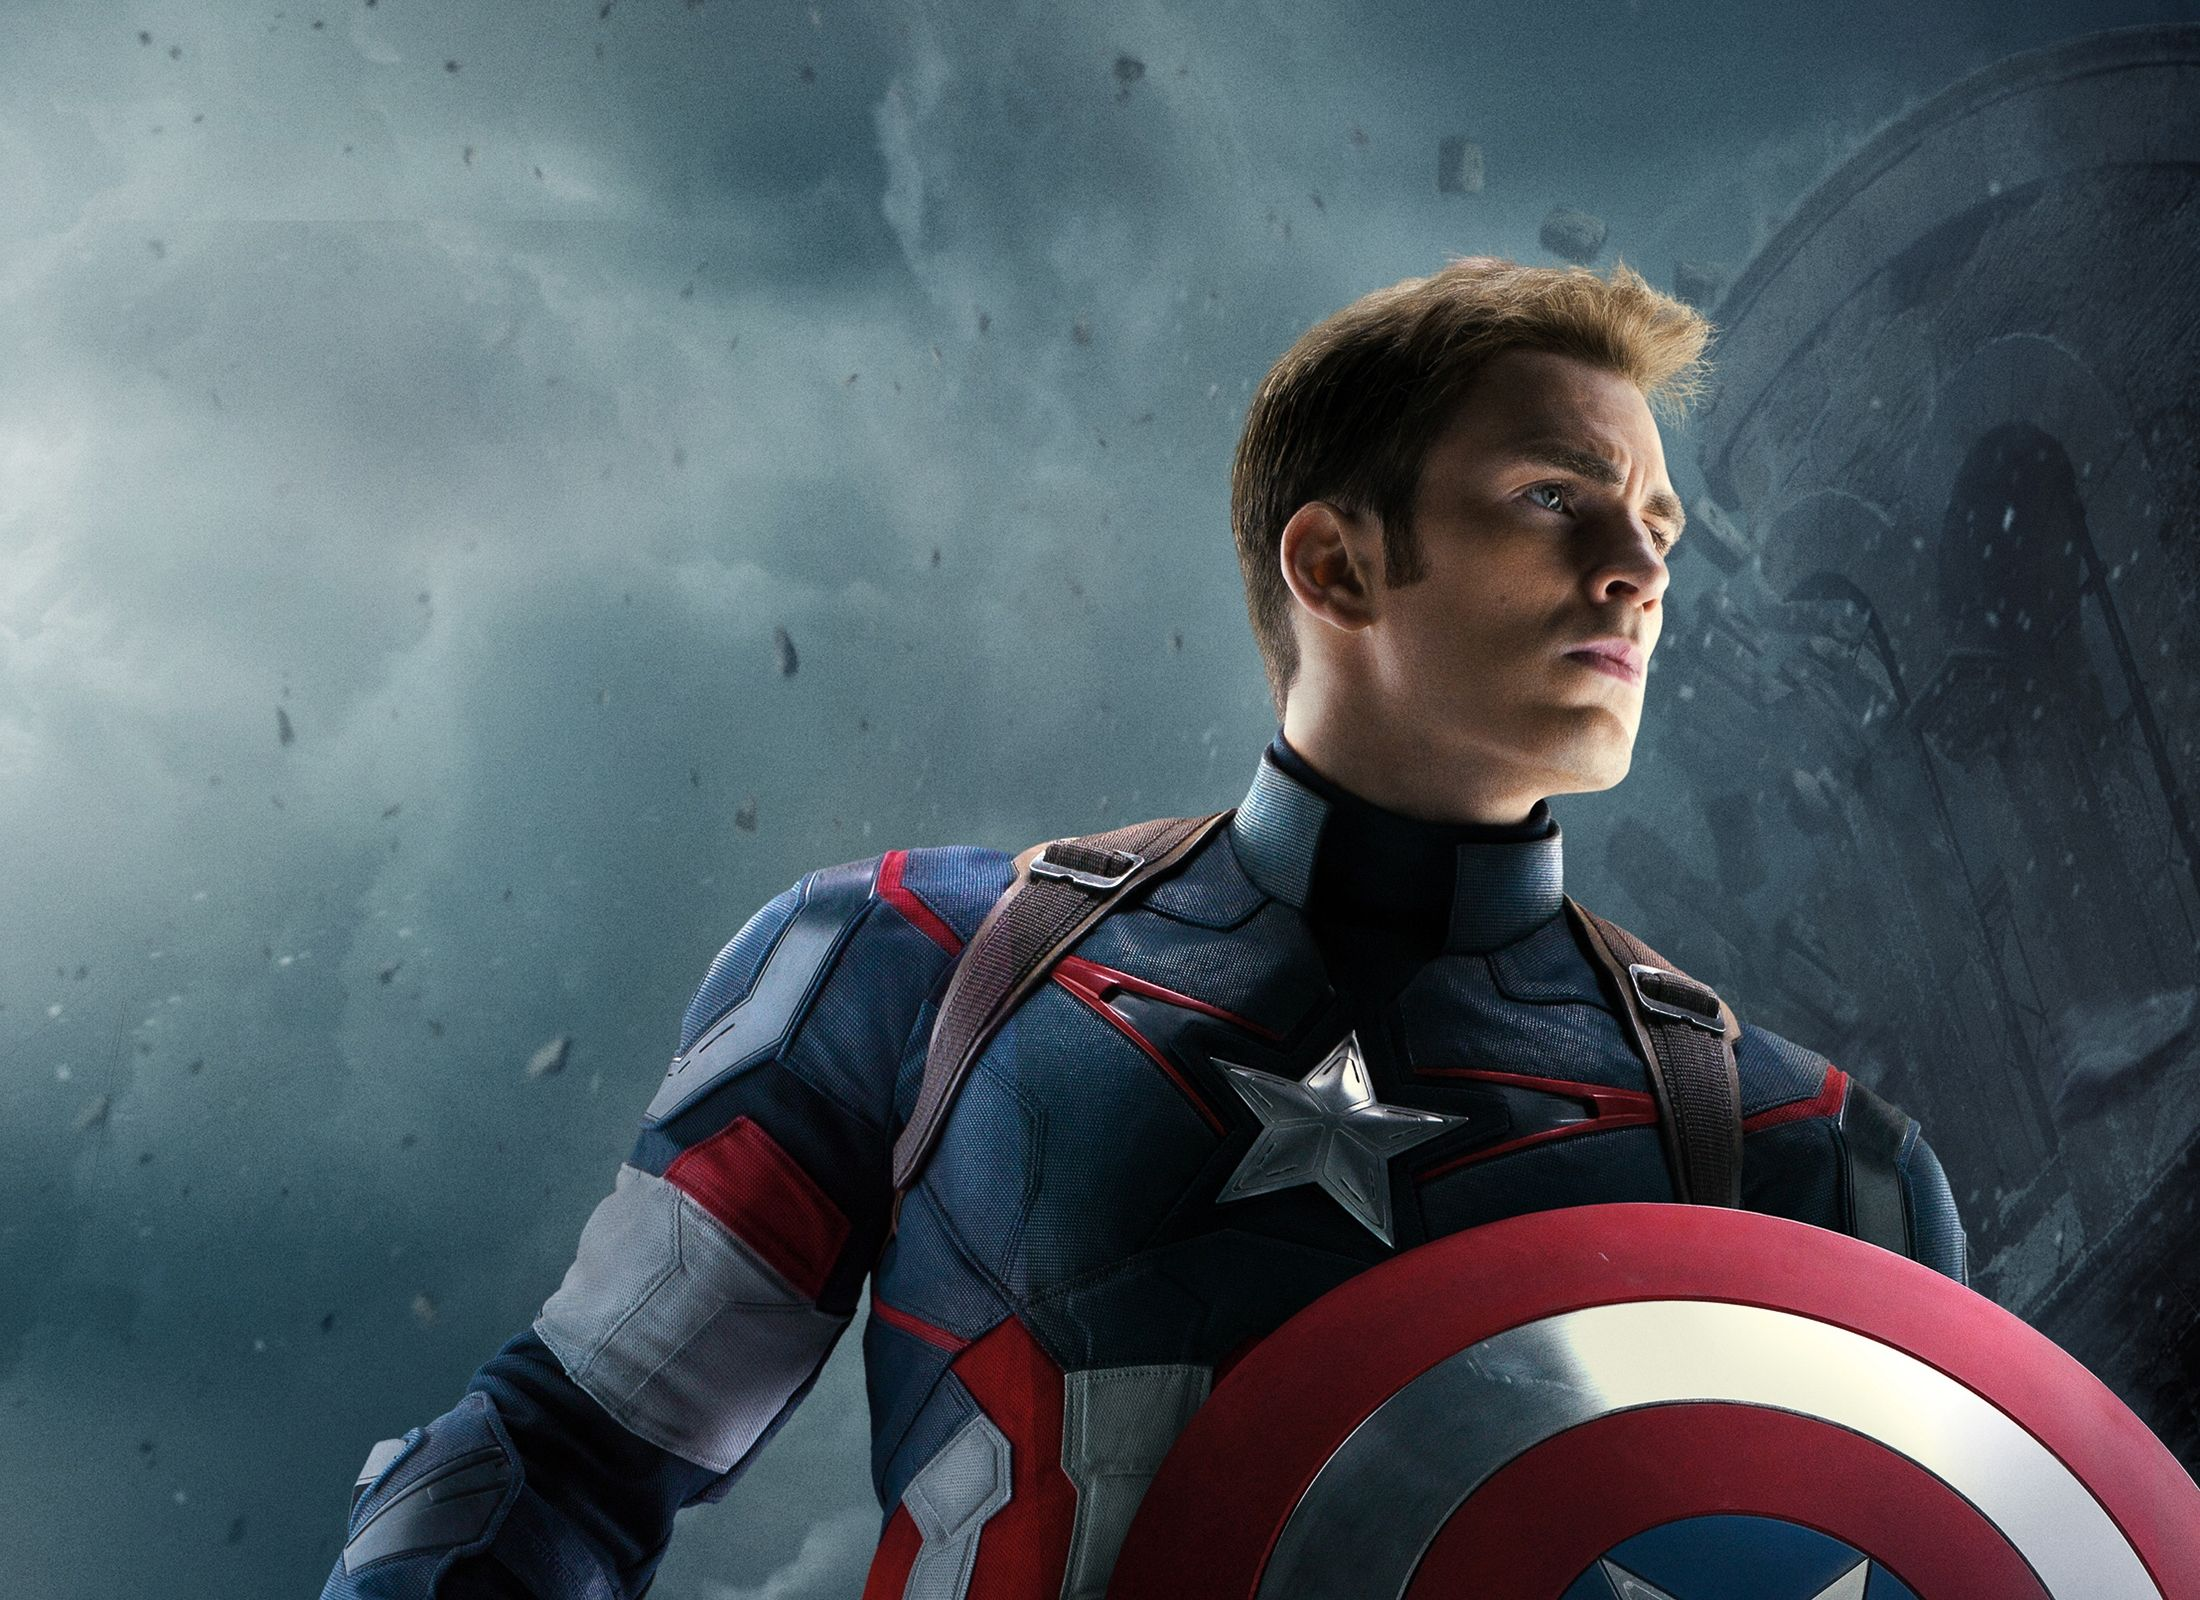 Captain America Wallpapers Free Download Hd Wallpapers Captain